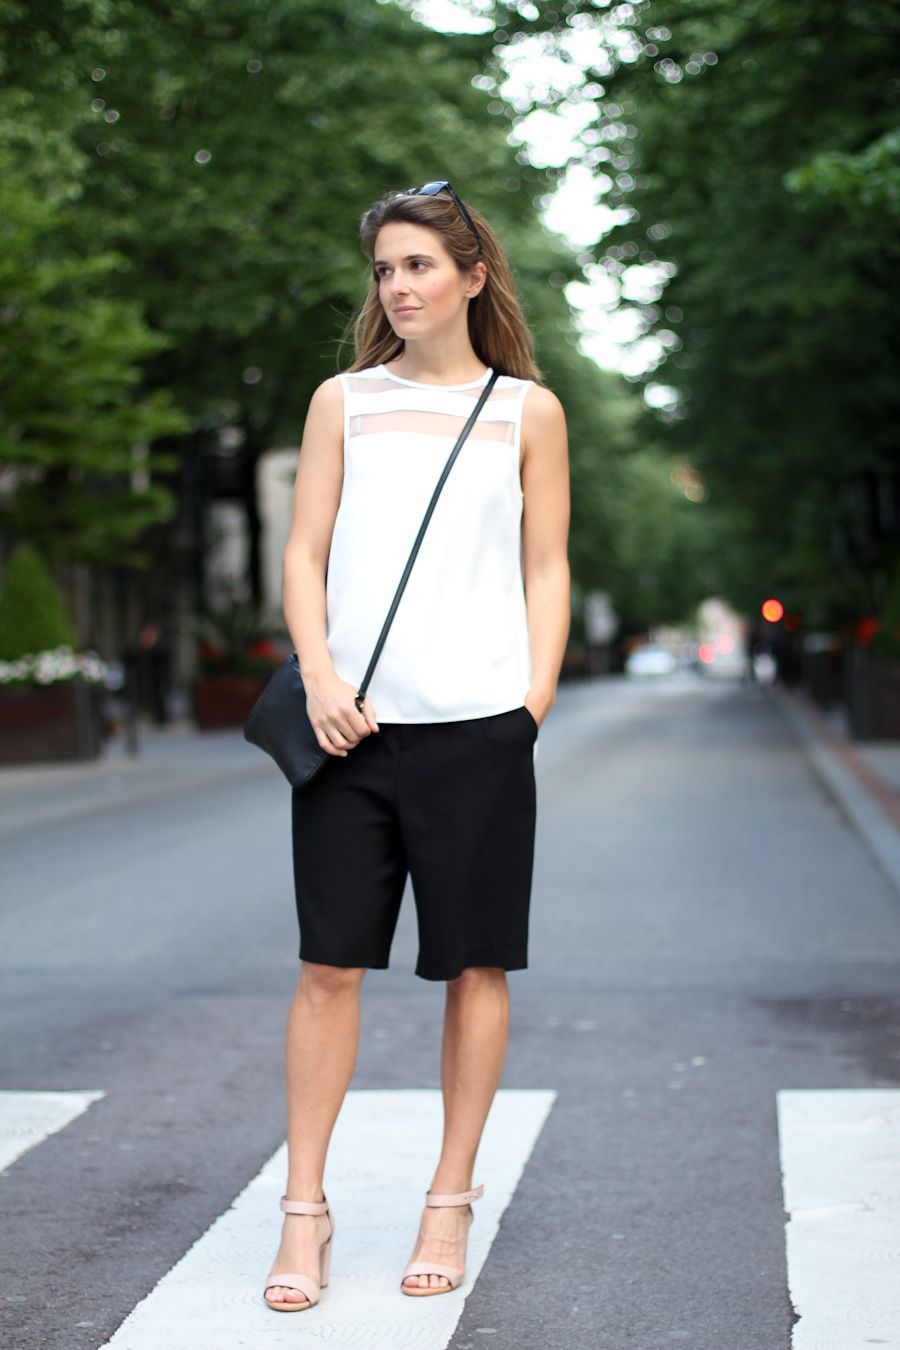 Bermuda Shorts are Back: 20 Modern Ways to WearThem